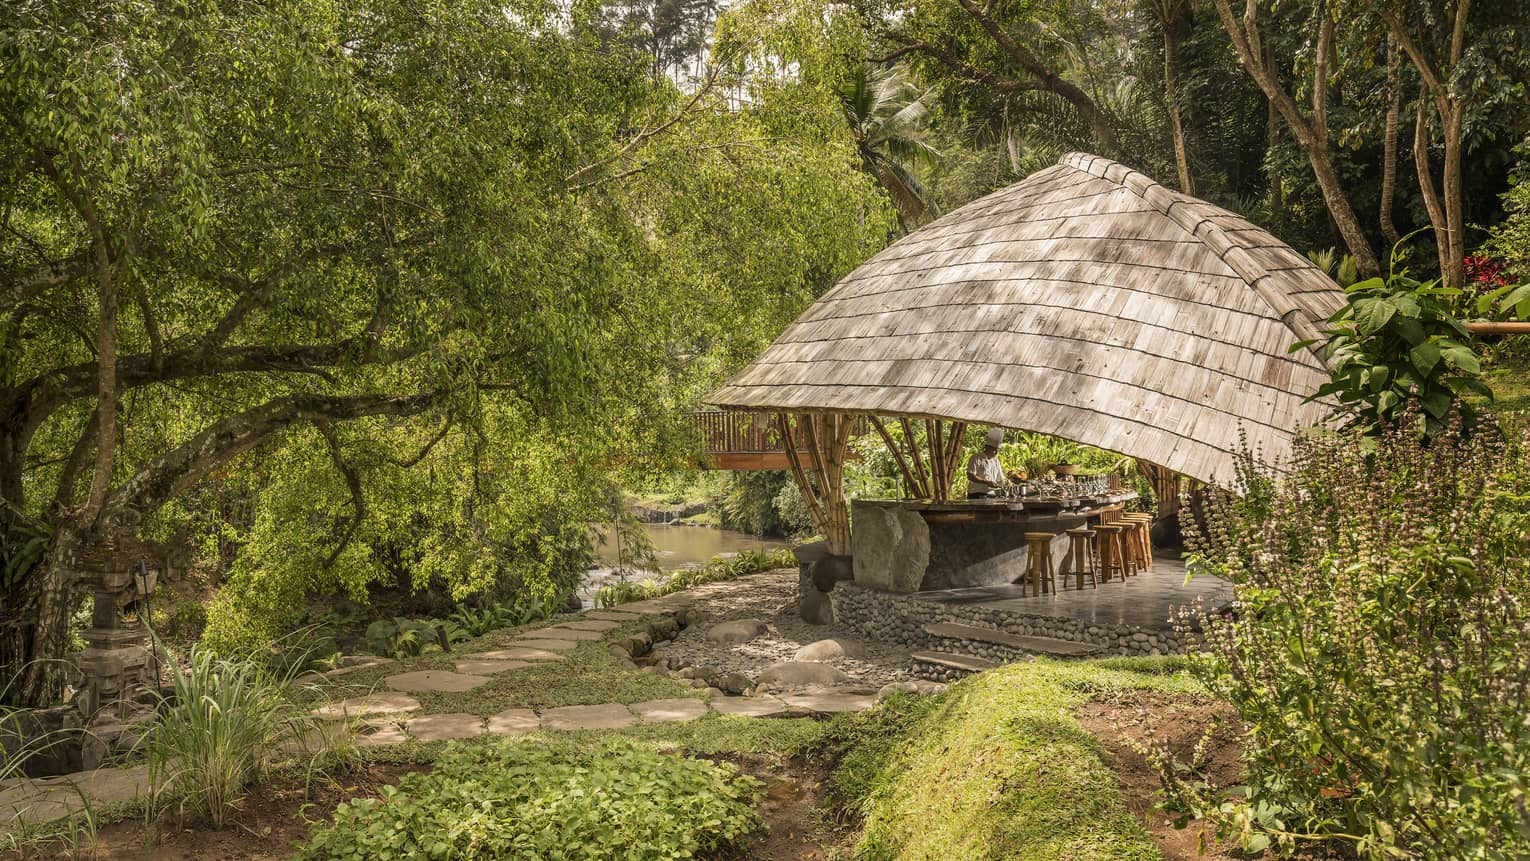 Four Seasons guests attend Sokasi Cooking School in an outdoor pavillion